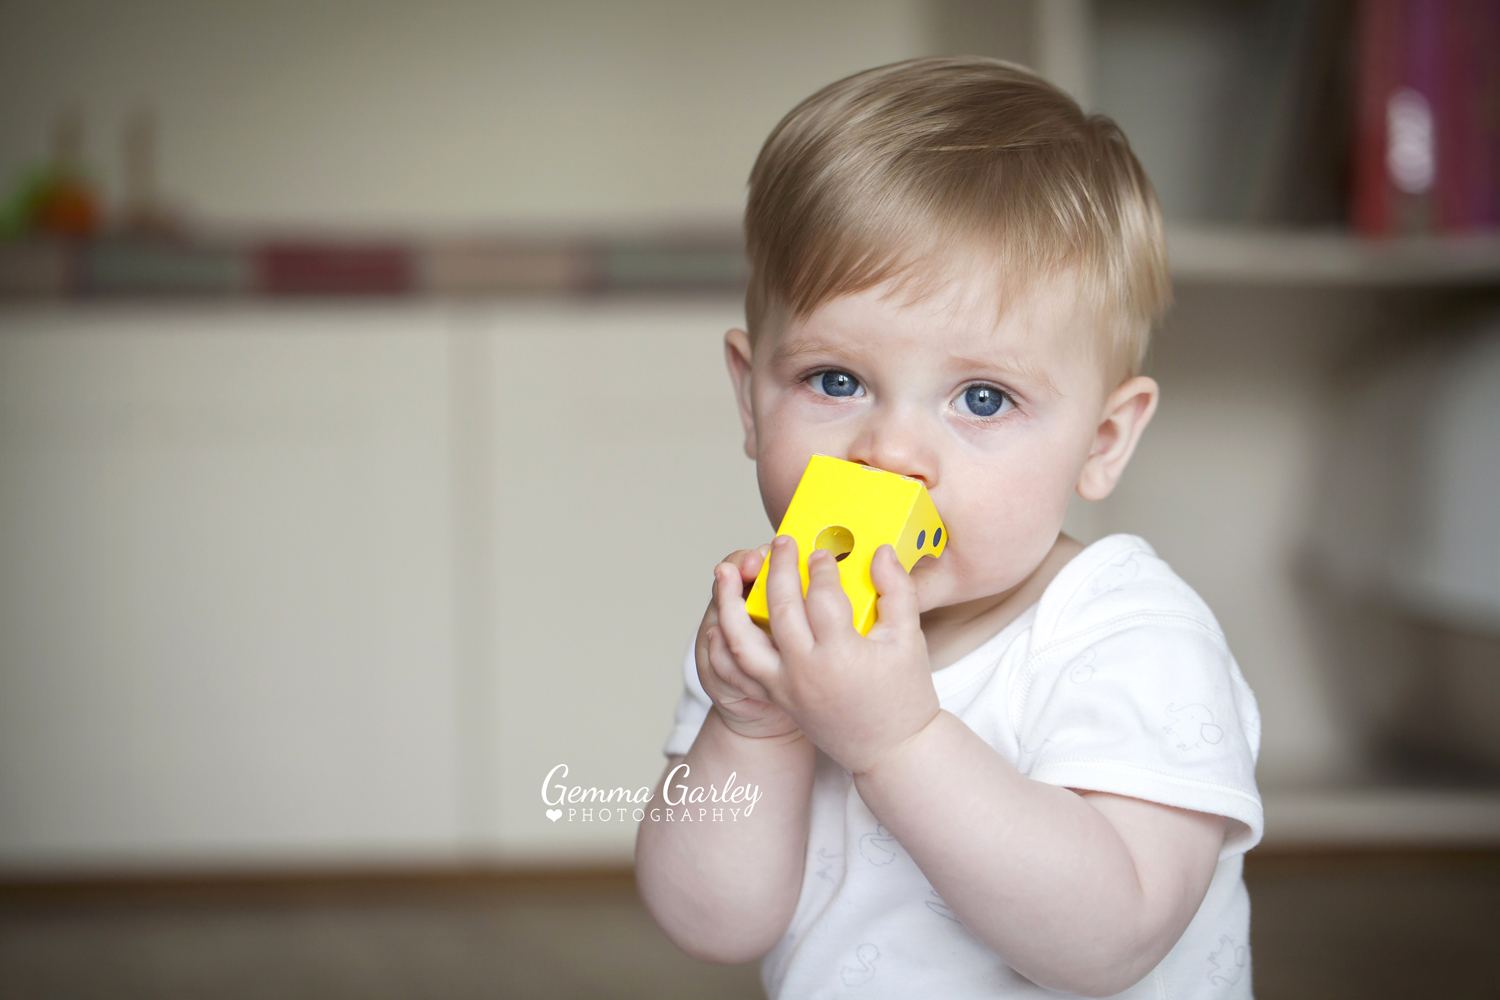 children photographer baby photographer lifestyle photographer bournemouth poole gemma garley photography.jpg